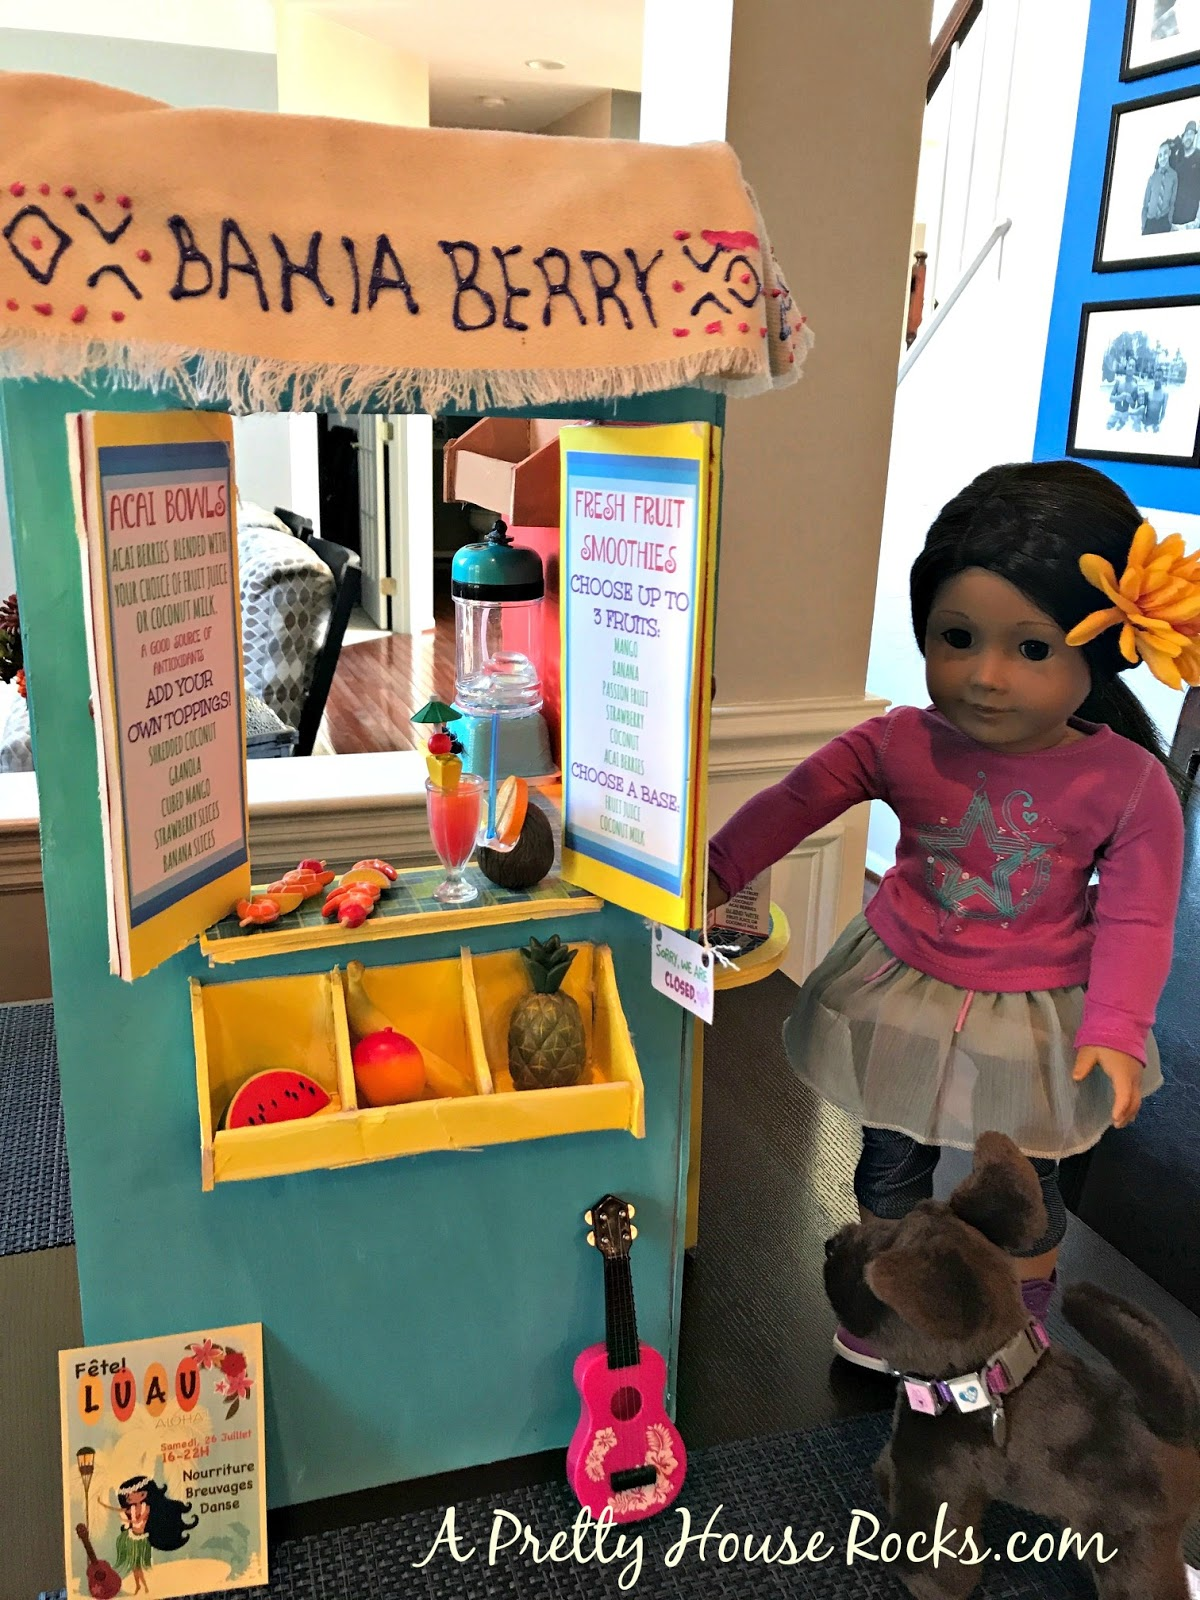 Diy american girl doll lea clarks fruit stand big gifts on a yes its an american girl doll fruit stand but can you believe that i actually built this myselfwith foam board no big bucks spent on this item solutioingenieria Images